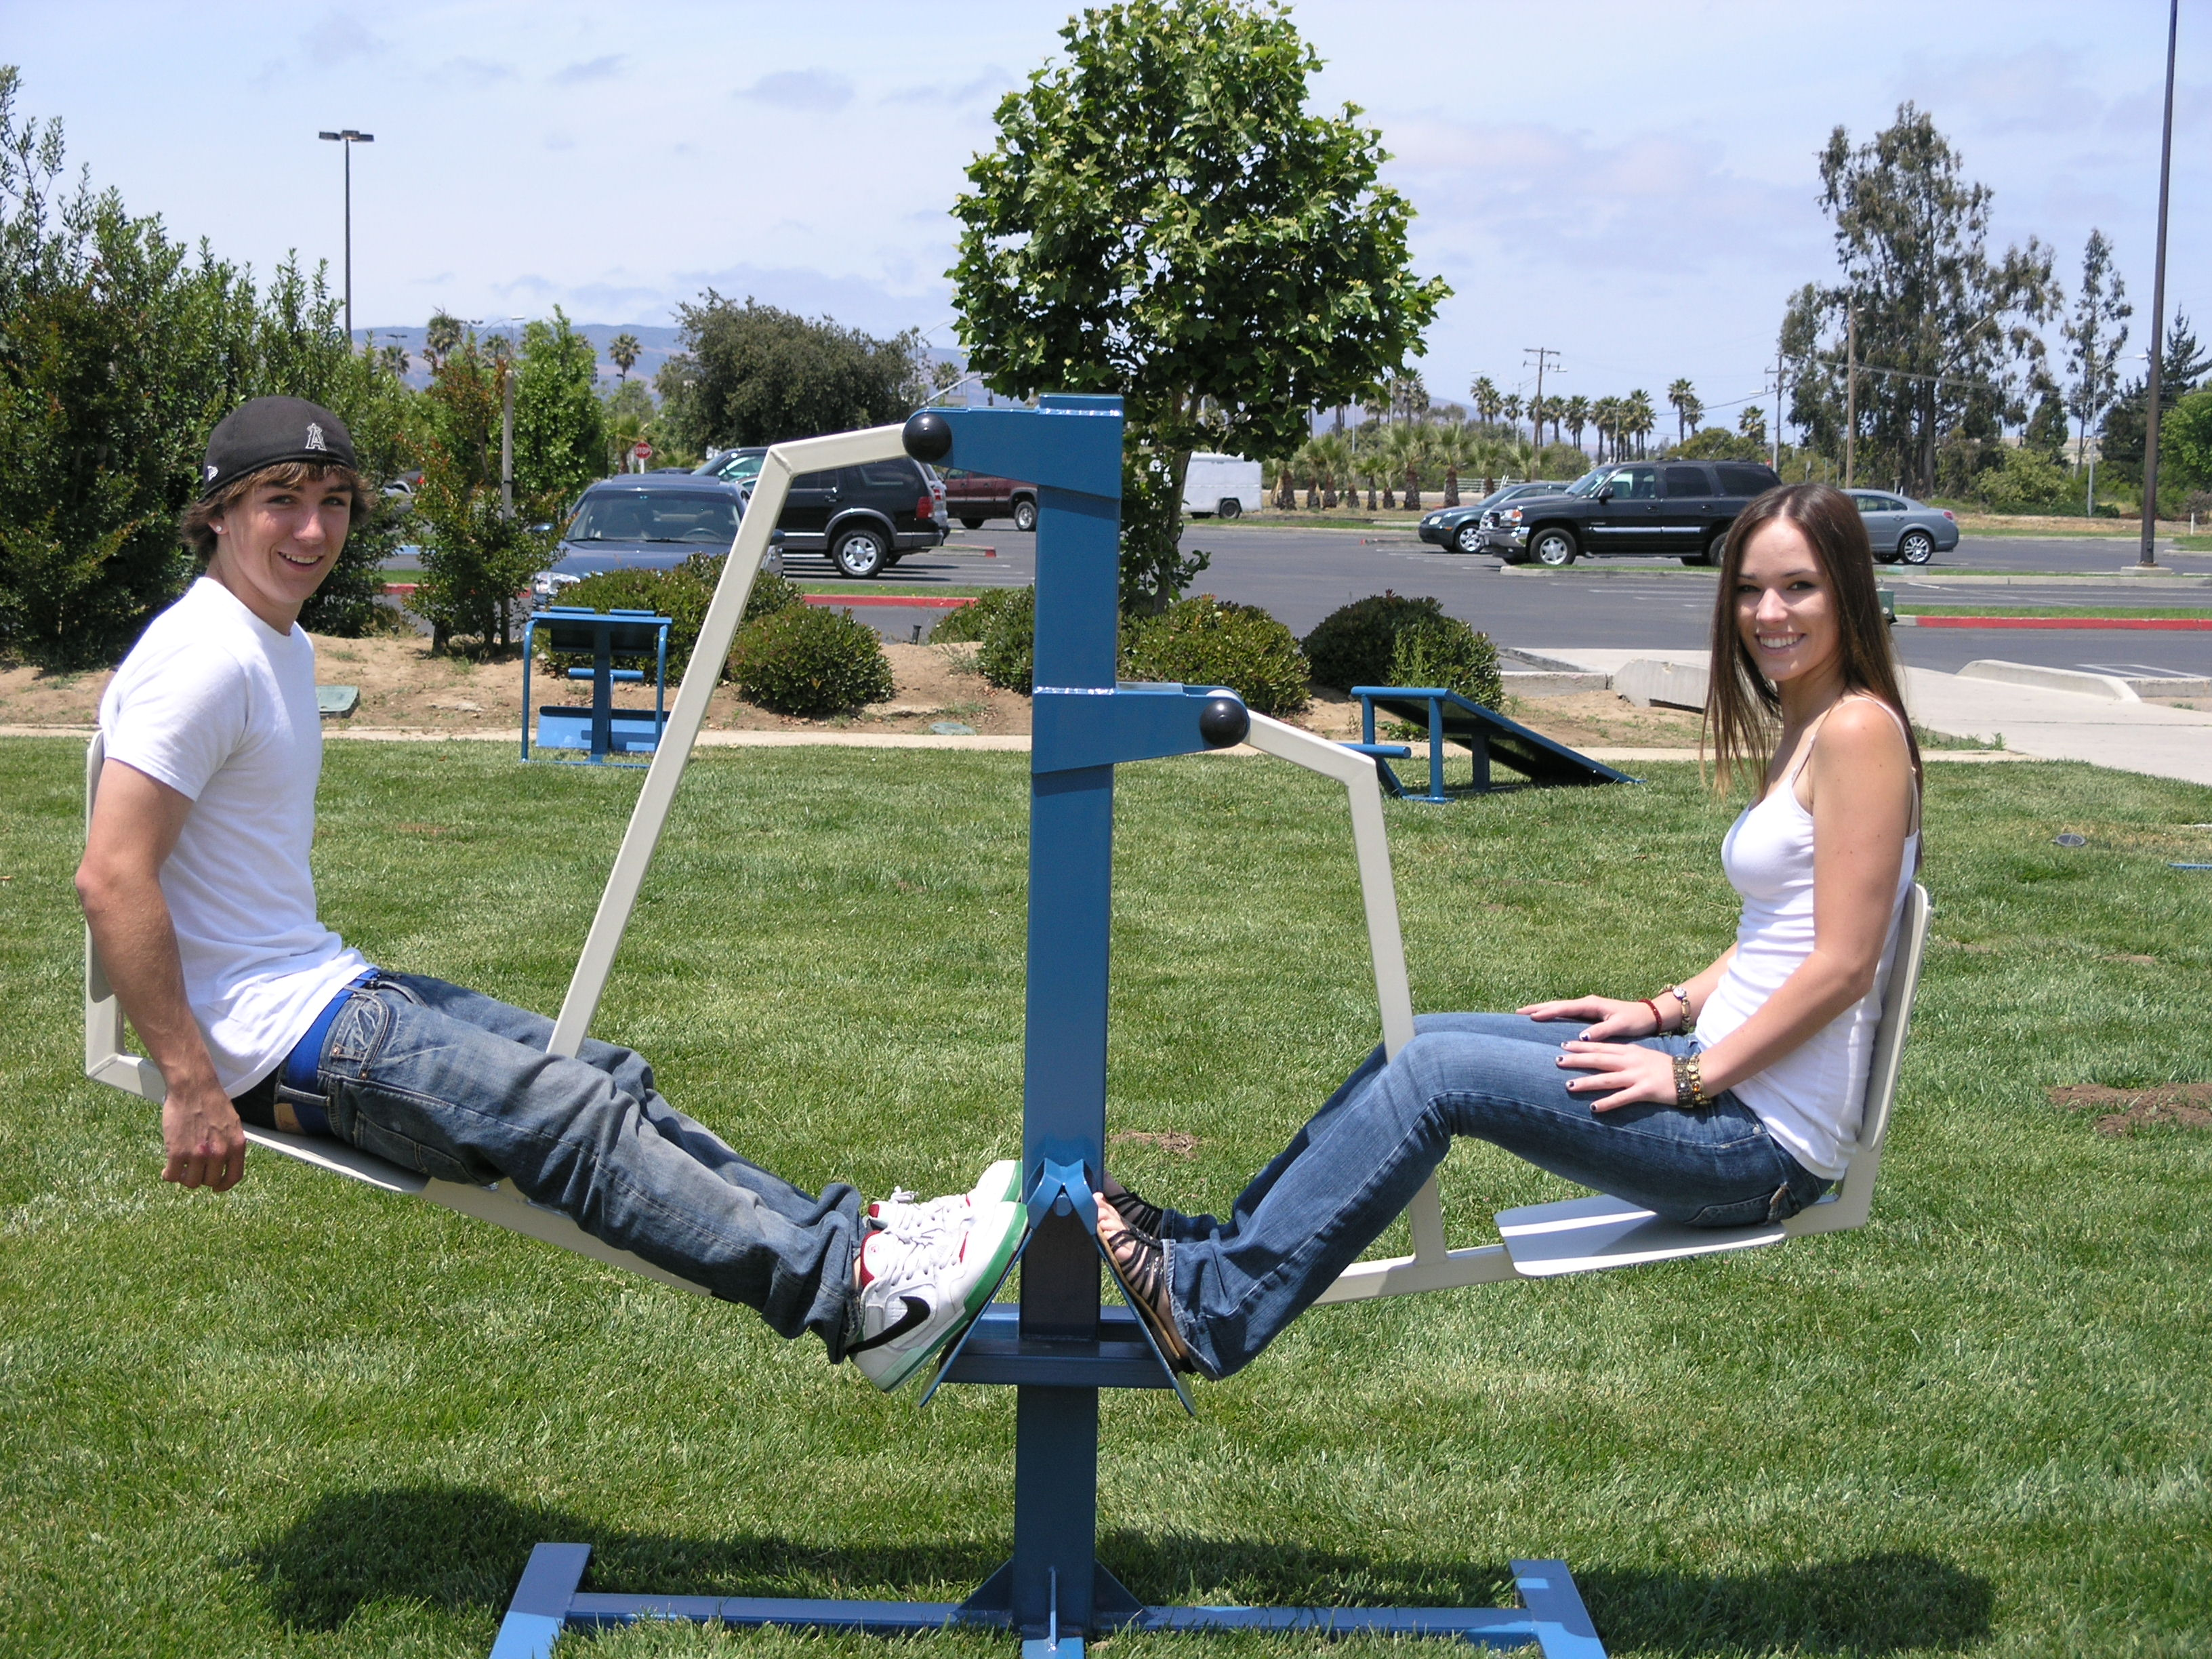 Fitness is Fun - Play It Safe Playgrounds & Park Equipment